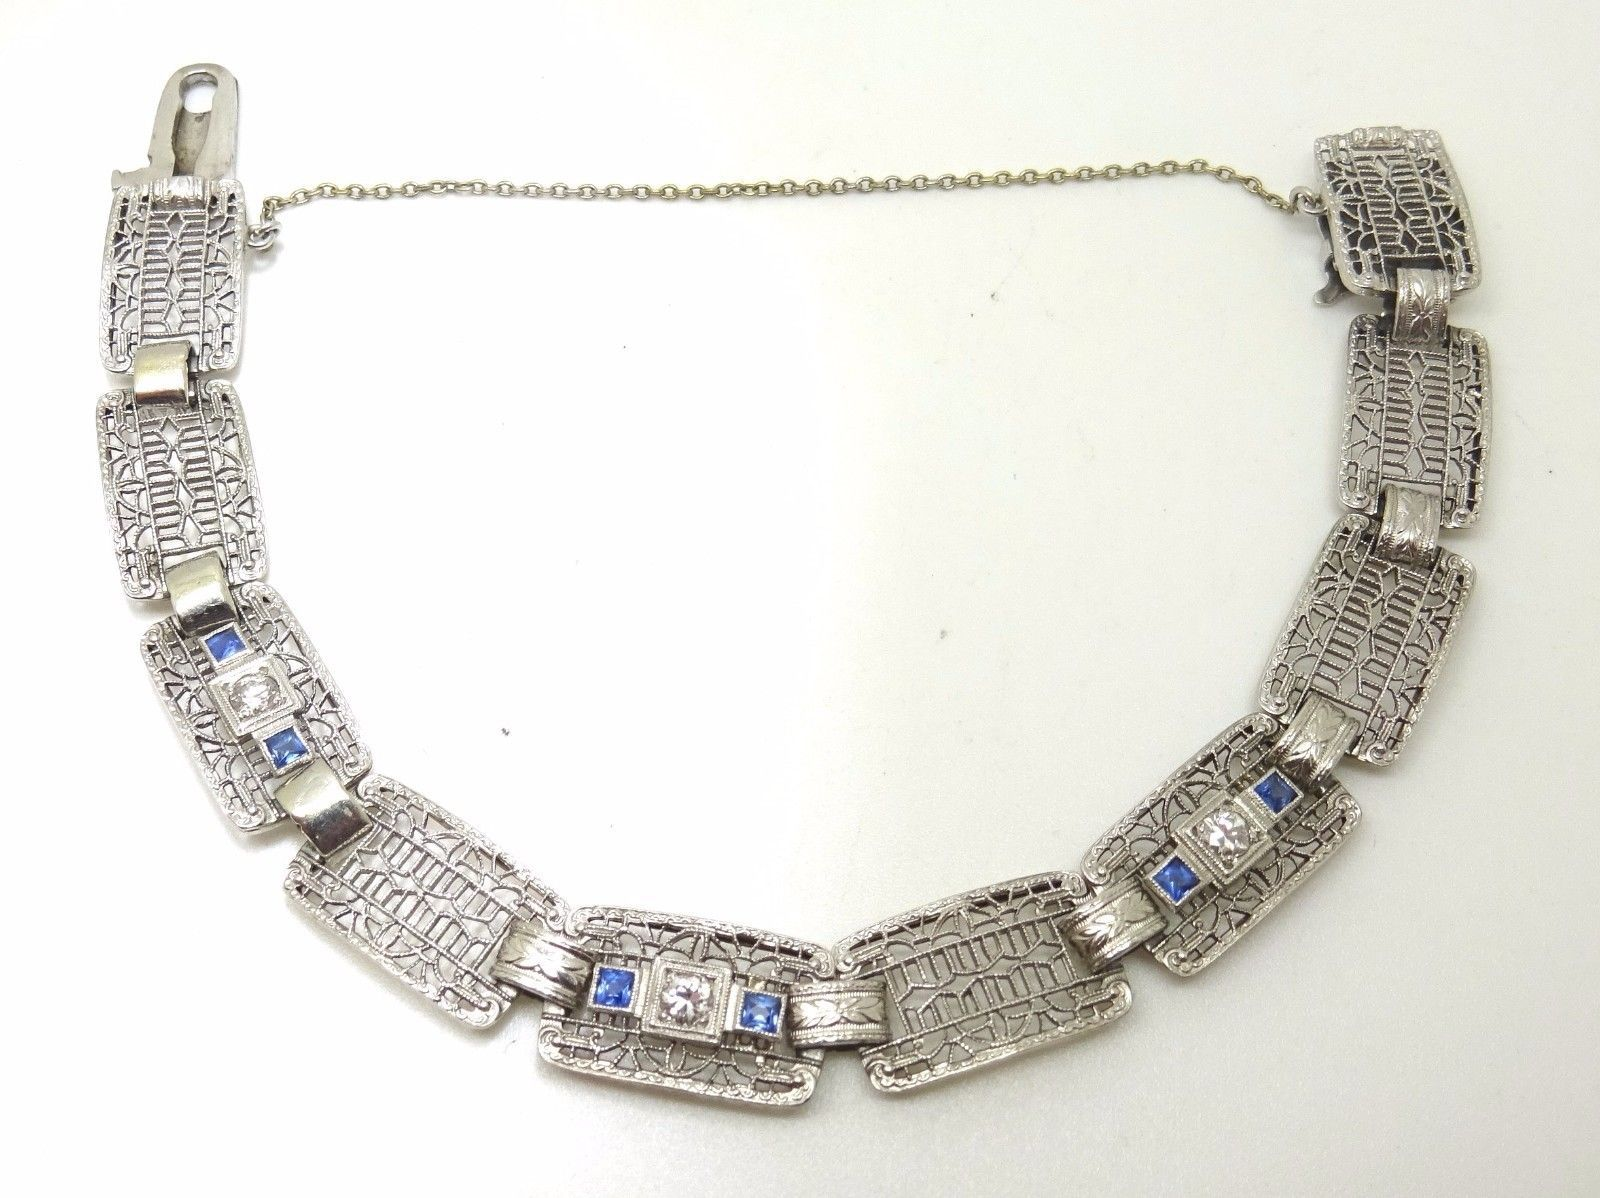 14k Gold Art Deco / Filigree Diamond Bracelet with Synthetic Sapphires (#3530)